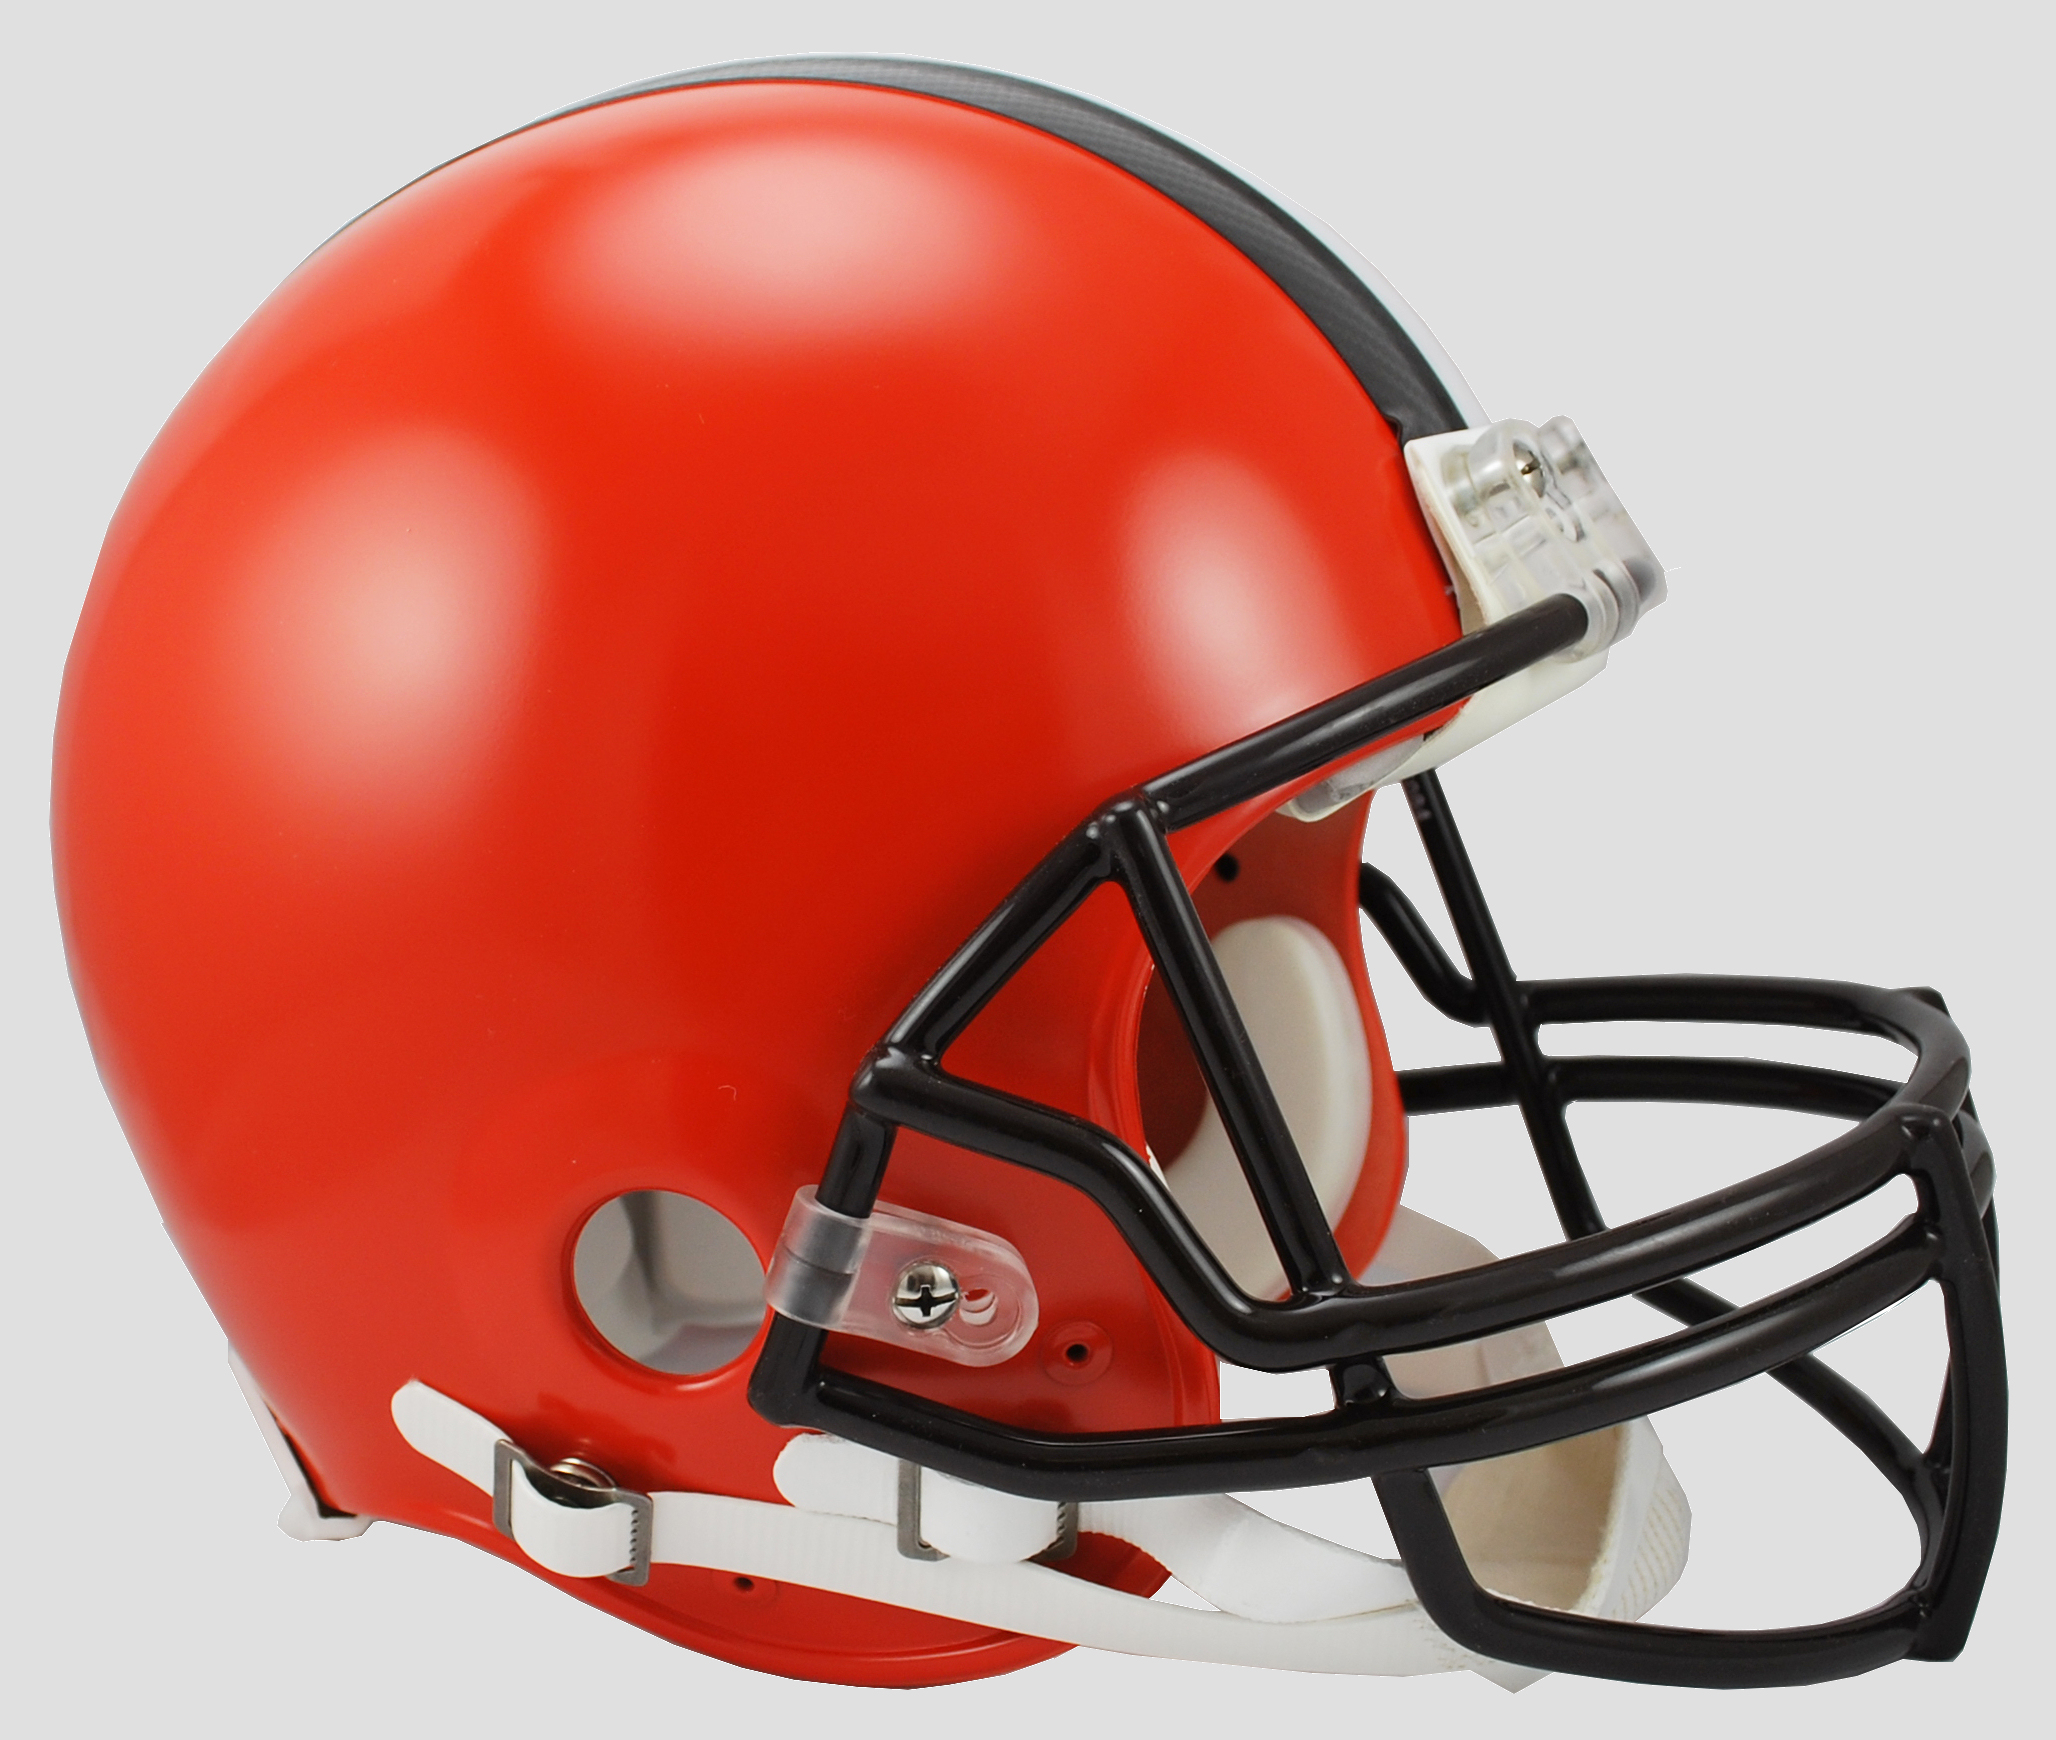 Cleveland Browns Football Helmet